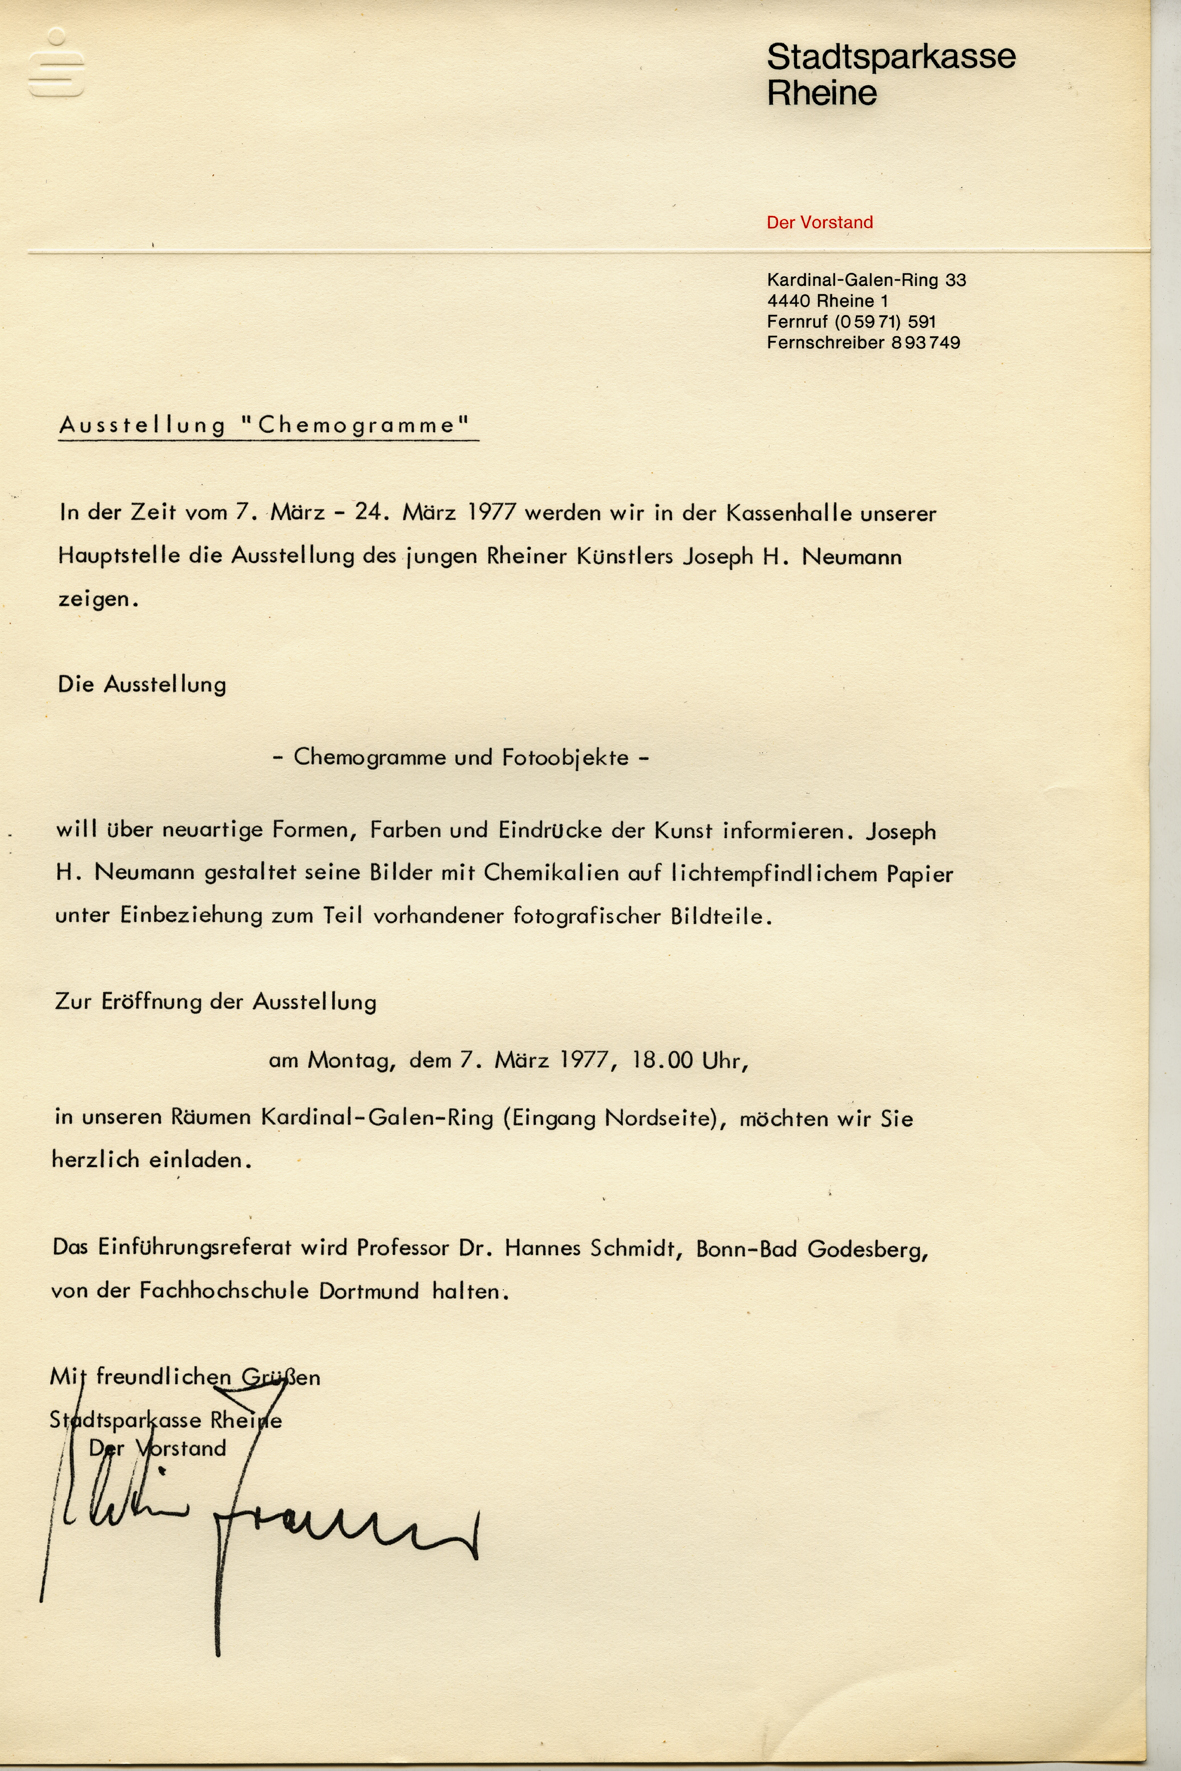 Invitation of the Management of the Sparkasse Rheine 1976 on the occasion of the Exhibition CHEMOGRAMME u. FOTO OBJEKTE v. Josef H. Neumann